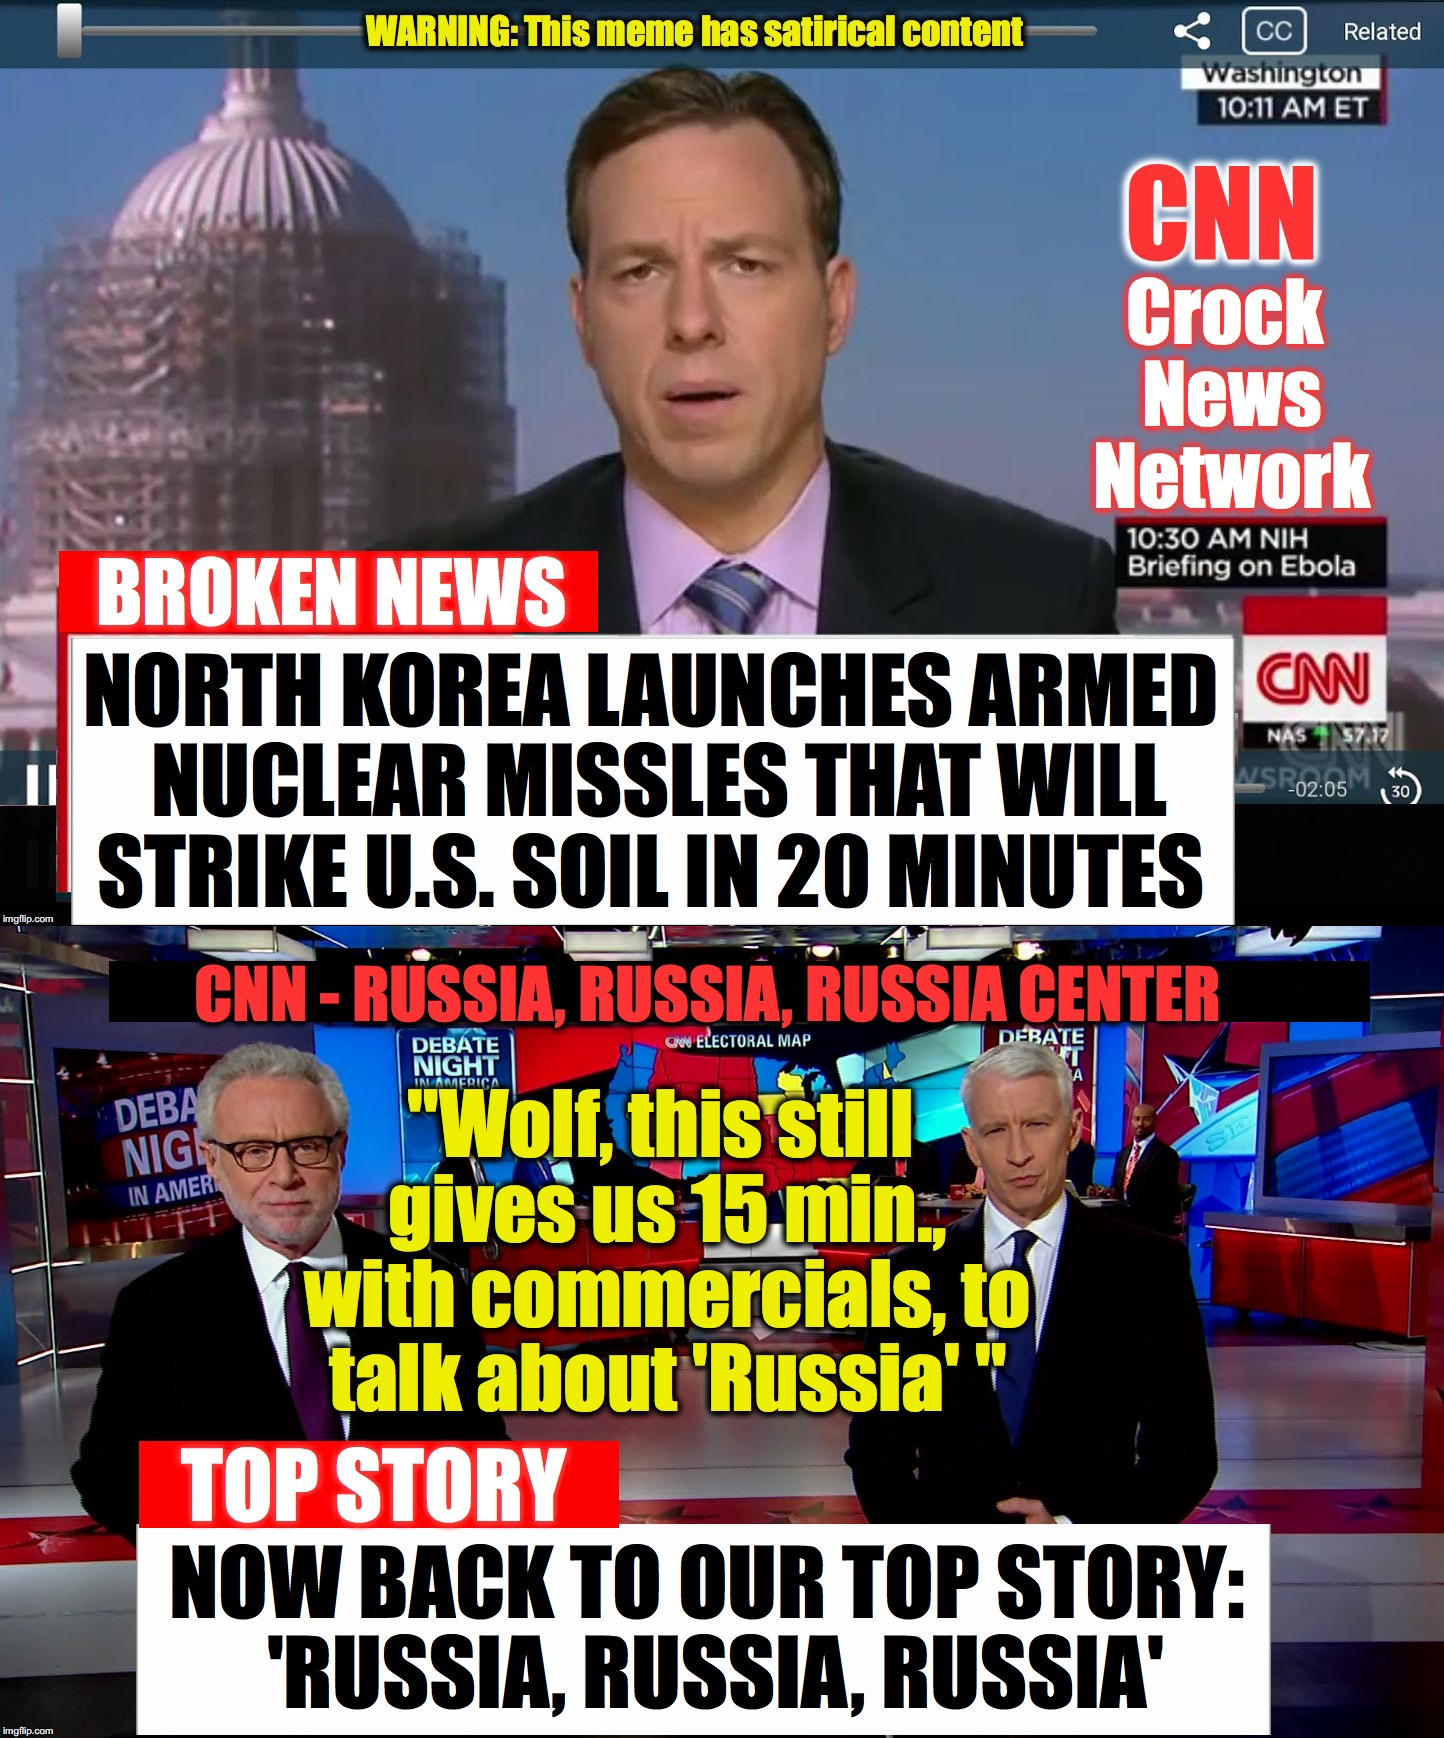 "I can actually picture this scenario... | NORTH KOREA LAUNCHES ARMED NUCLEAR MISSLES THAT WILL STRIKE U.S. SOIL IN 20 MINUTES ""Wolf, this still gives us 15 min., with commercials, to 